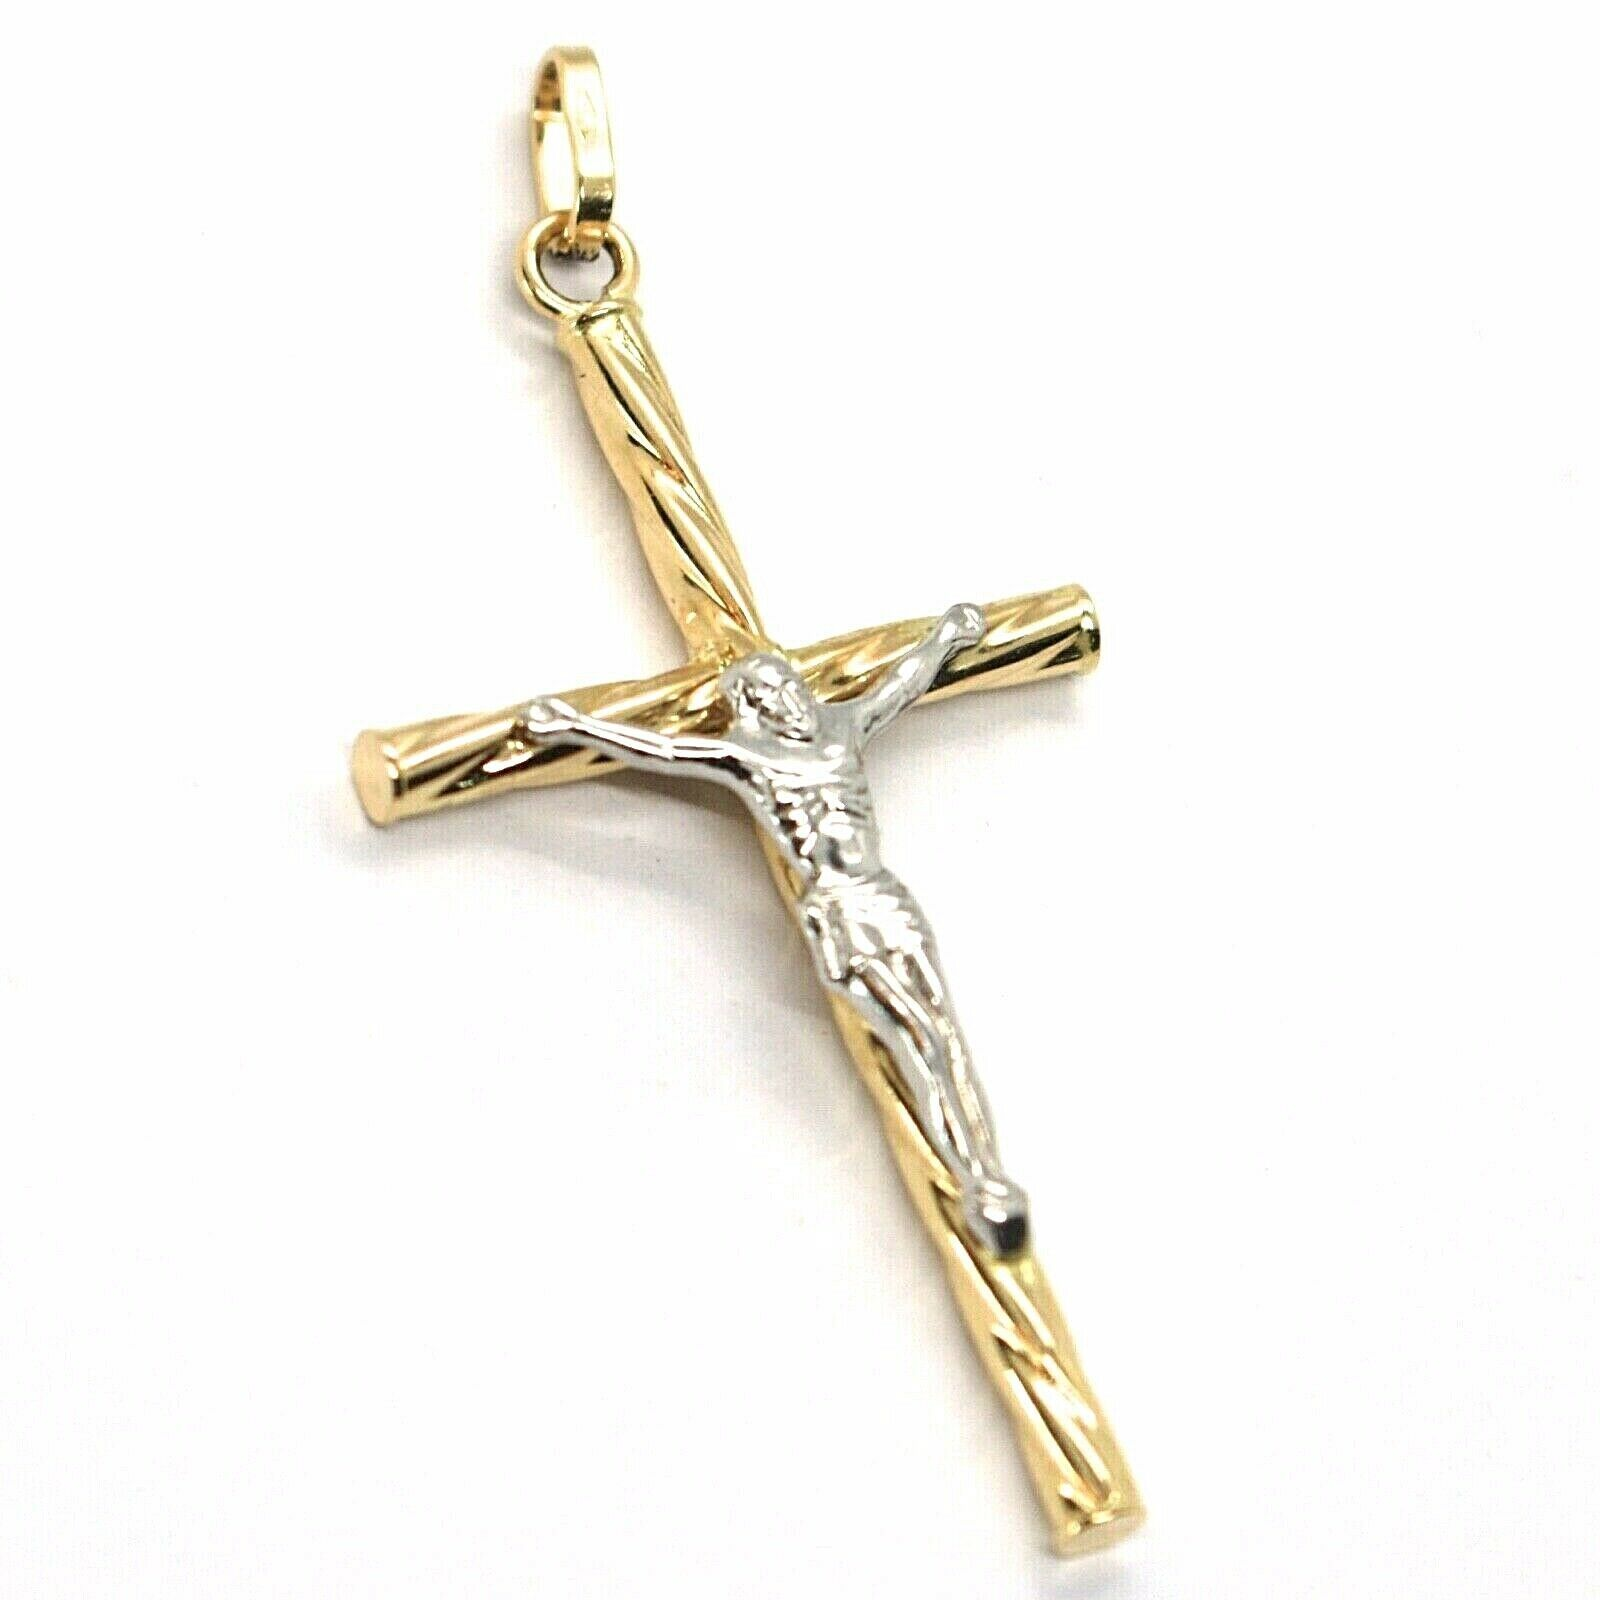 18K YELLOW & WHITE GOLD TWISTED TUBE CROSS PENDANT, JESUS CHRIST, 1.57 INCHES